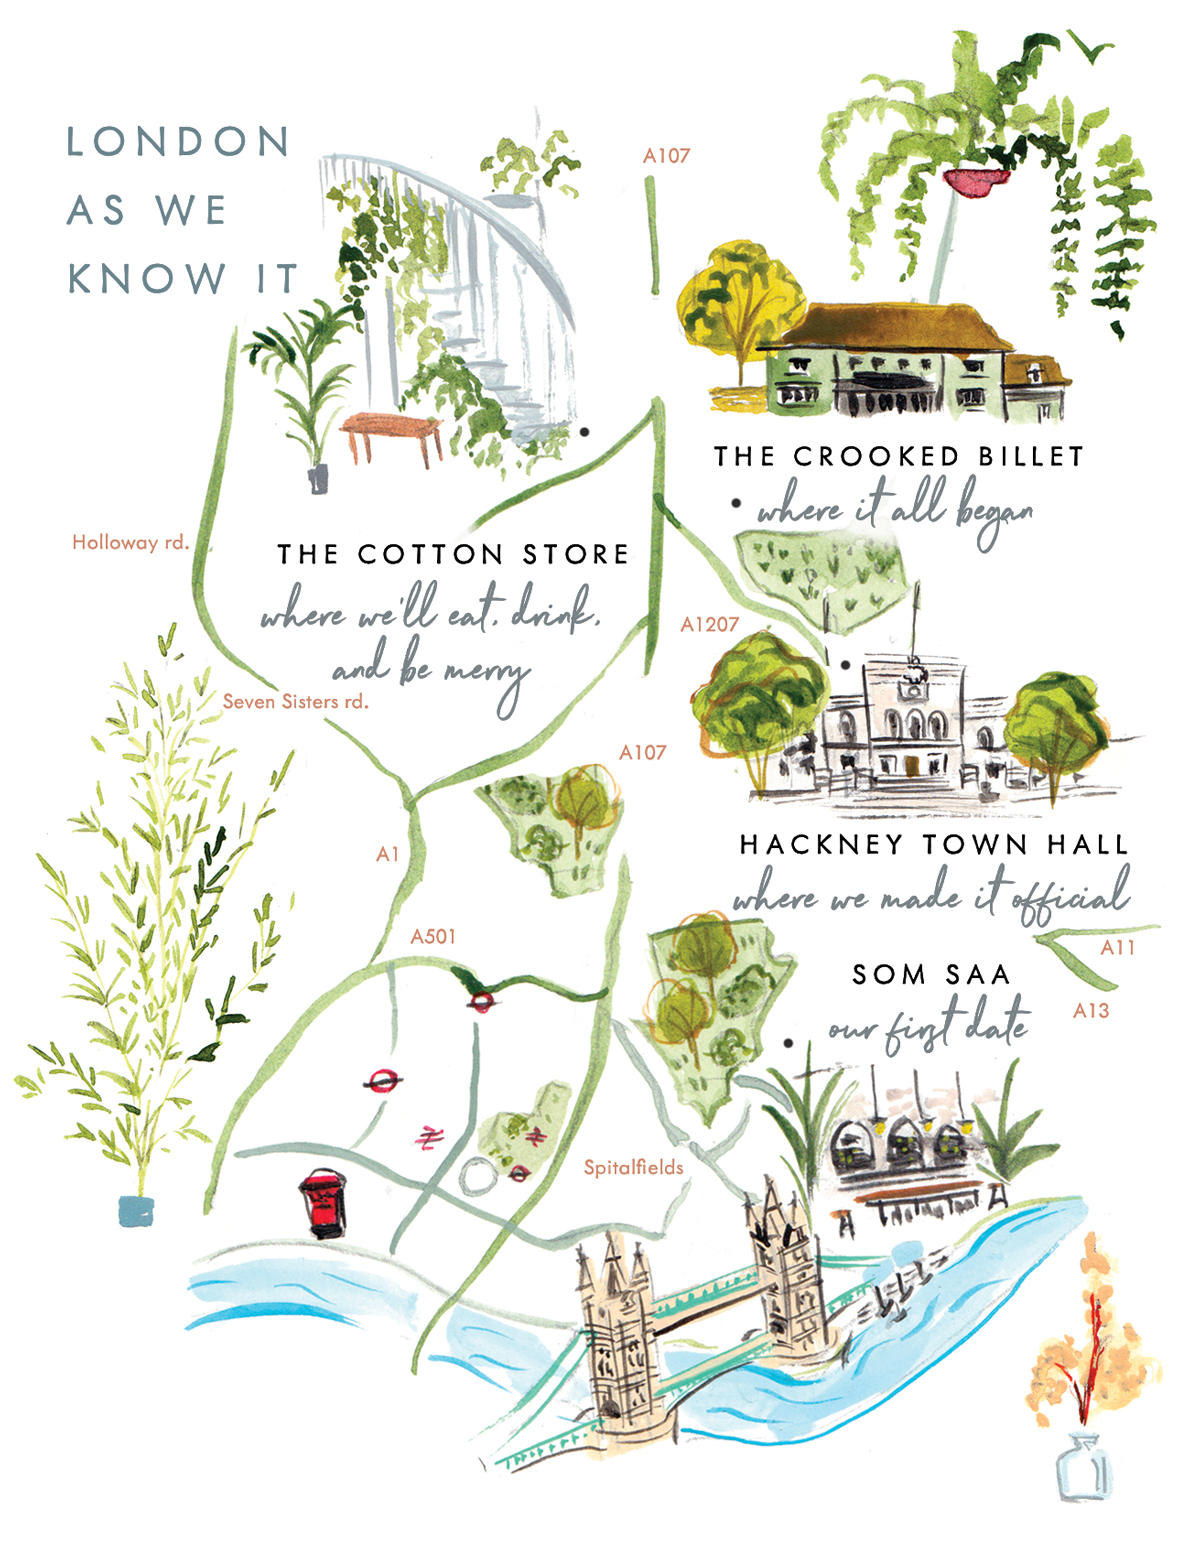 jolly-edition-london-wedding-map-design